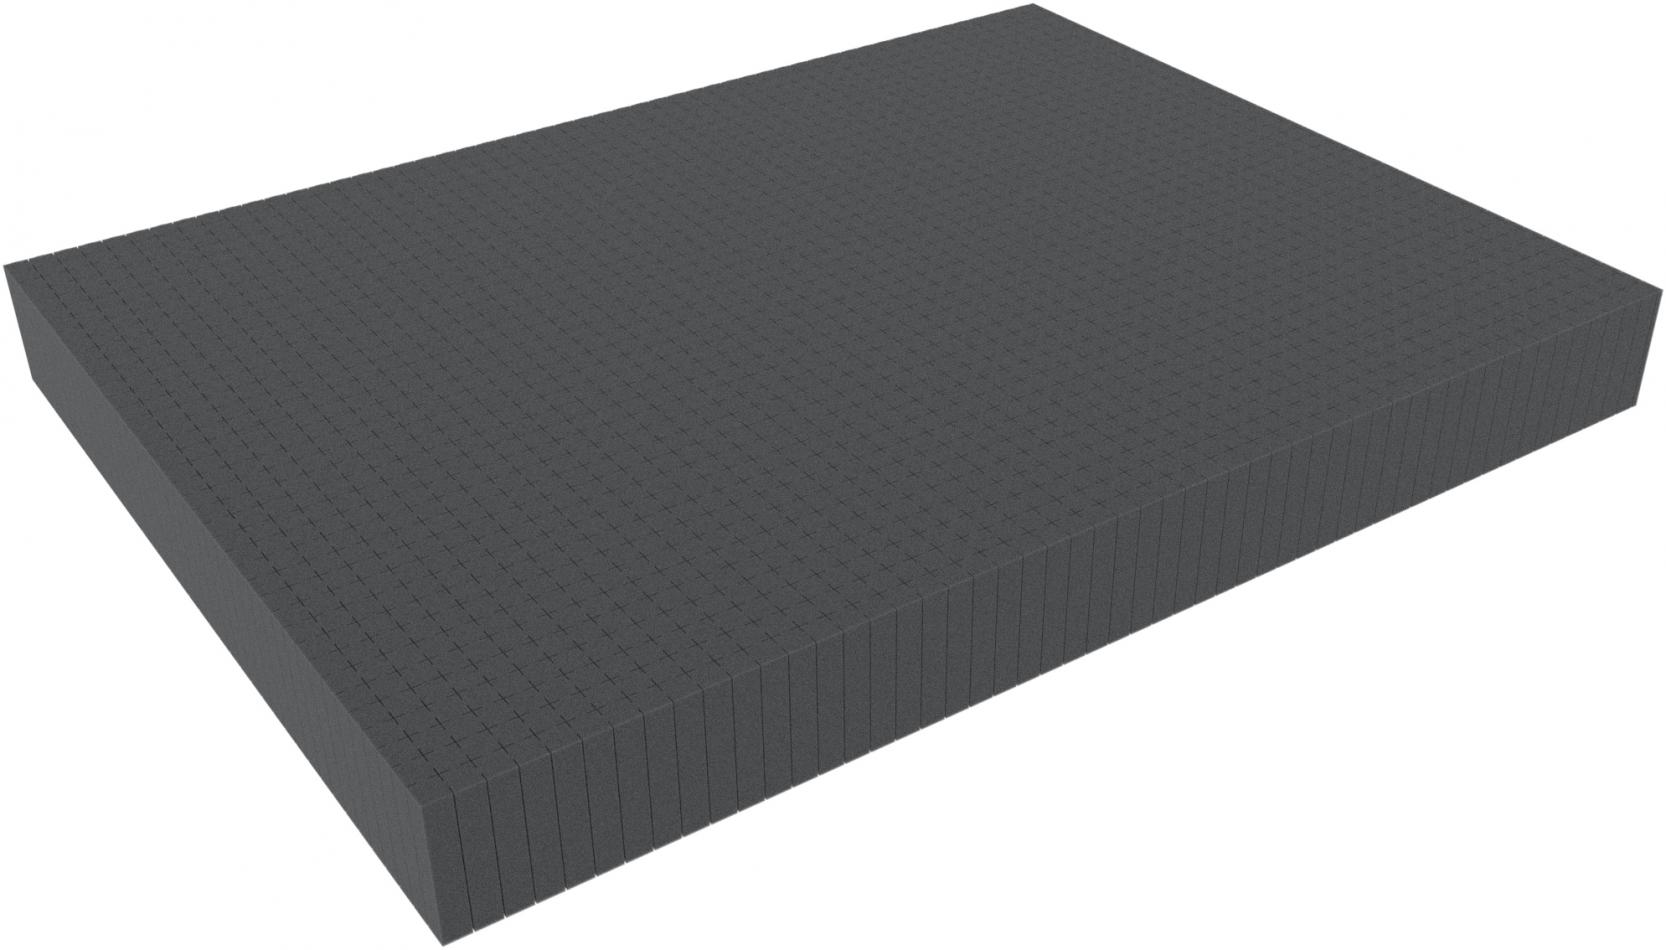 800 mm x 600 mm x 80 mm - Raster 15 mm - Pick and Pluck / Pre-Cubed foam tray